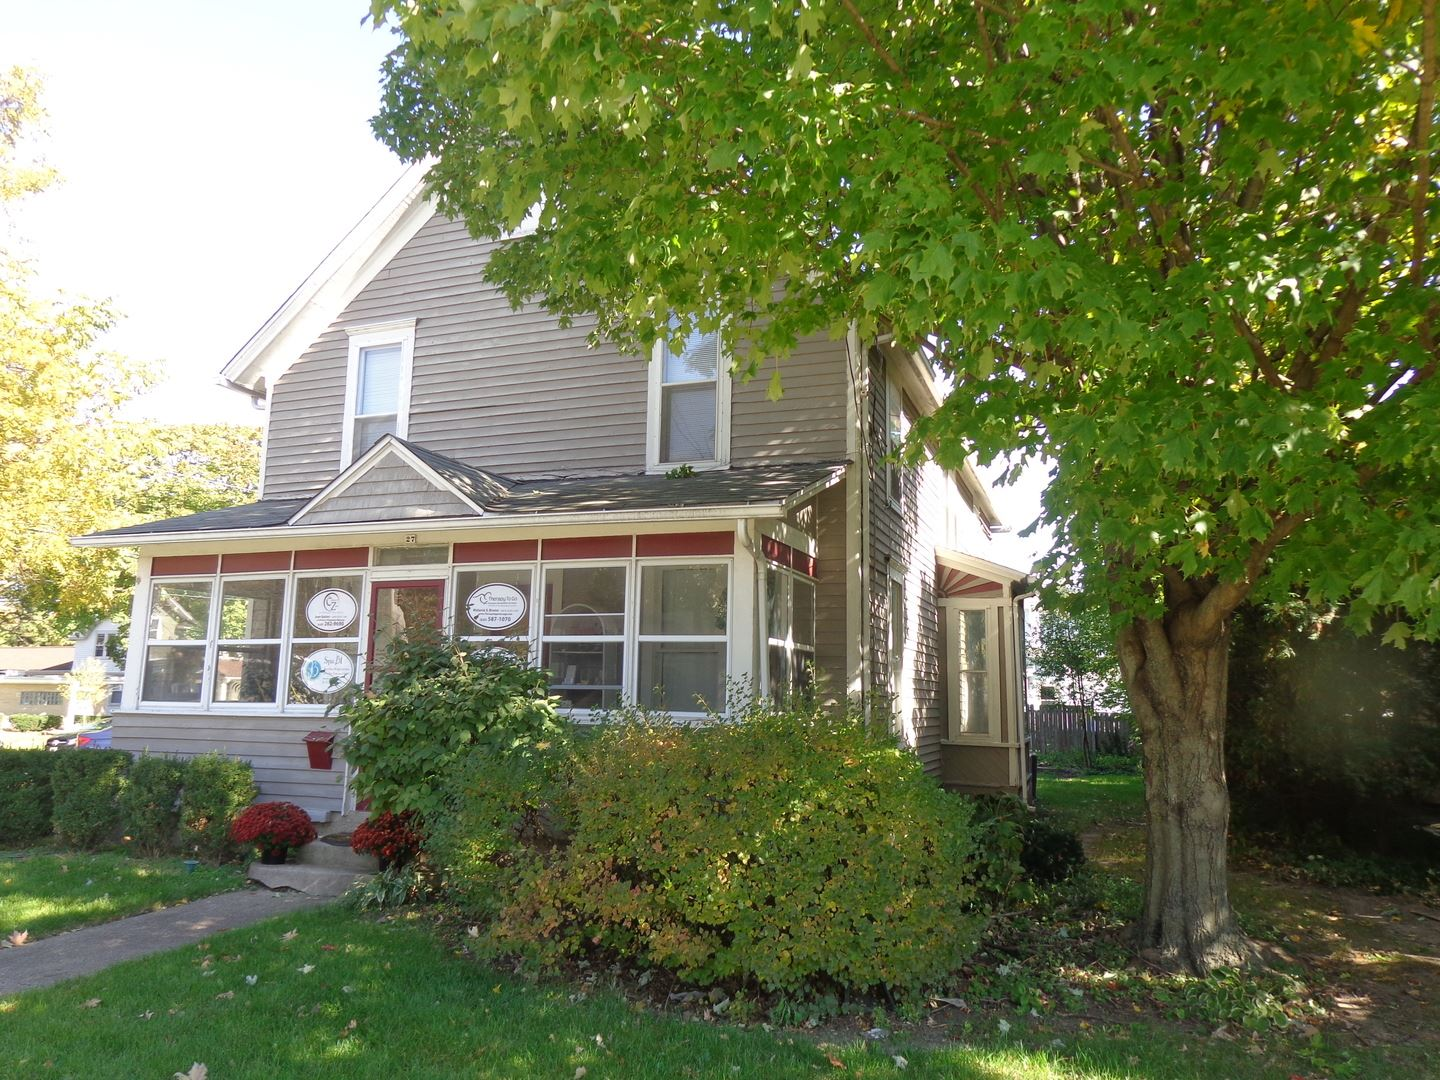 27 N 6th Street, Geneva, IL 60134 - #: 10711534